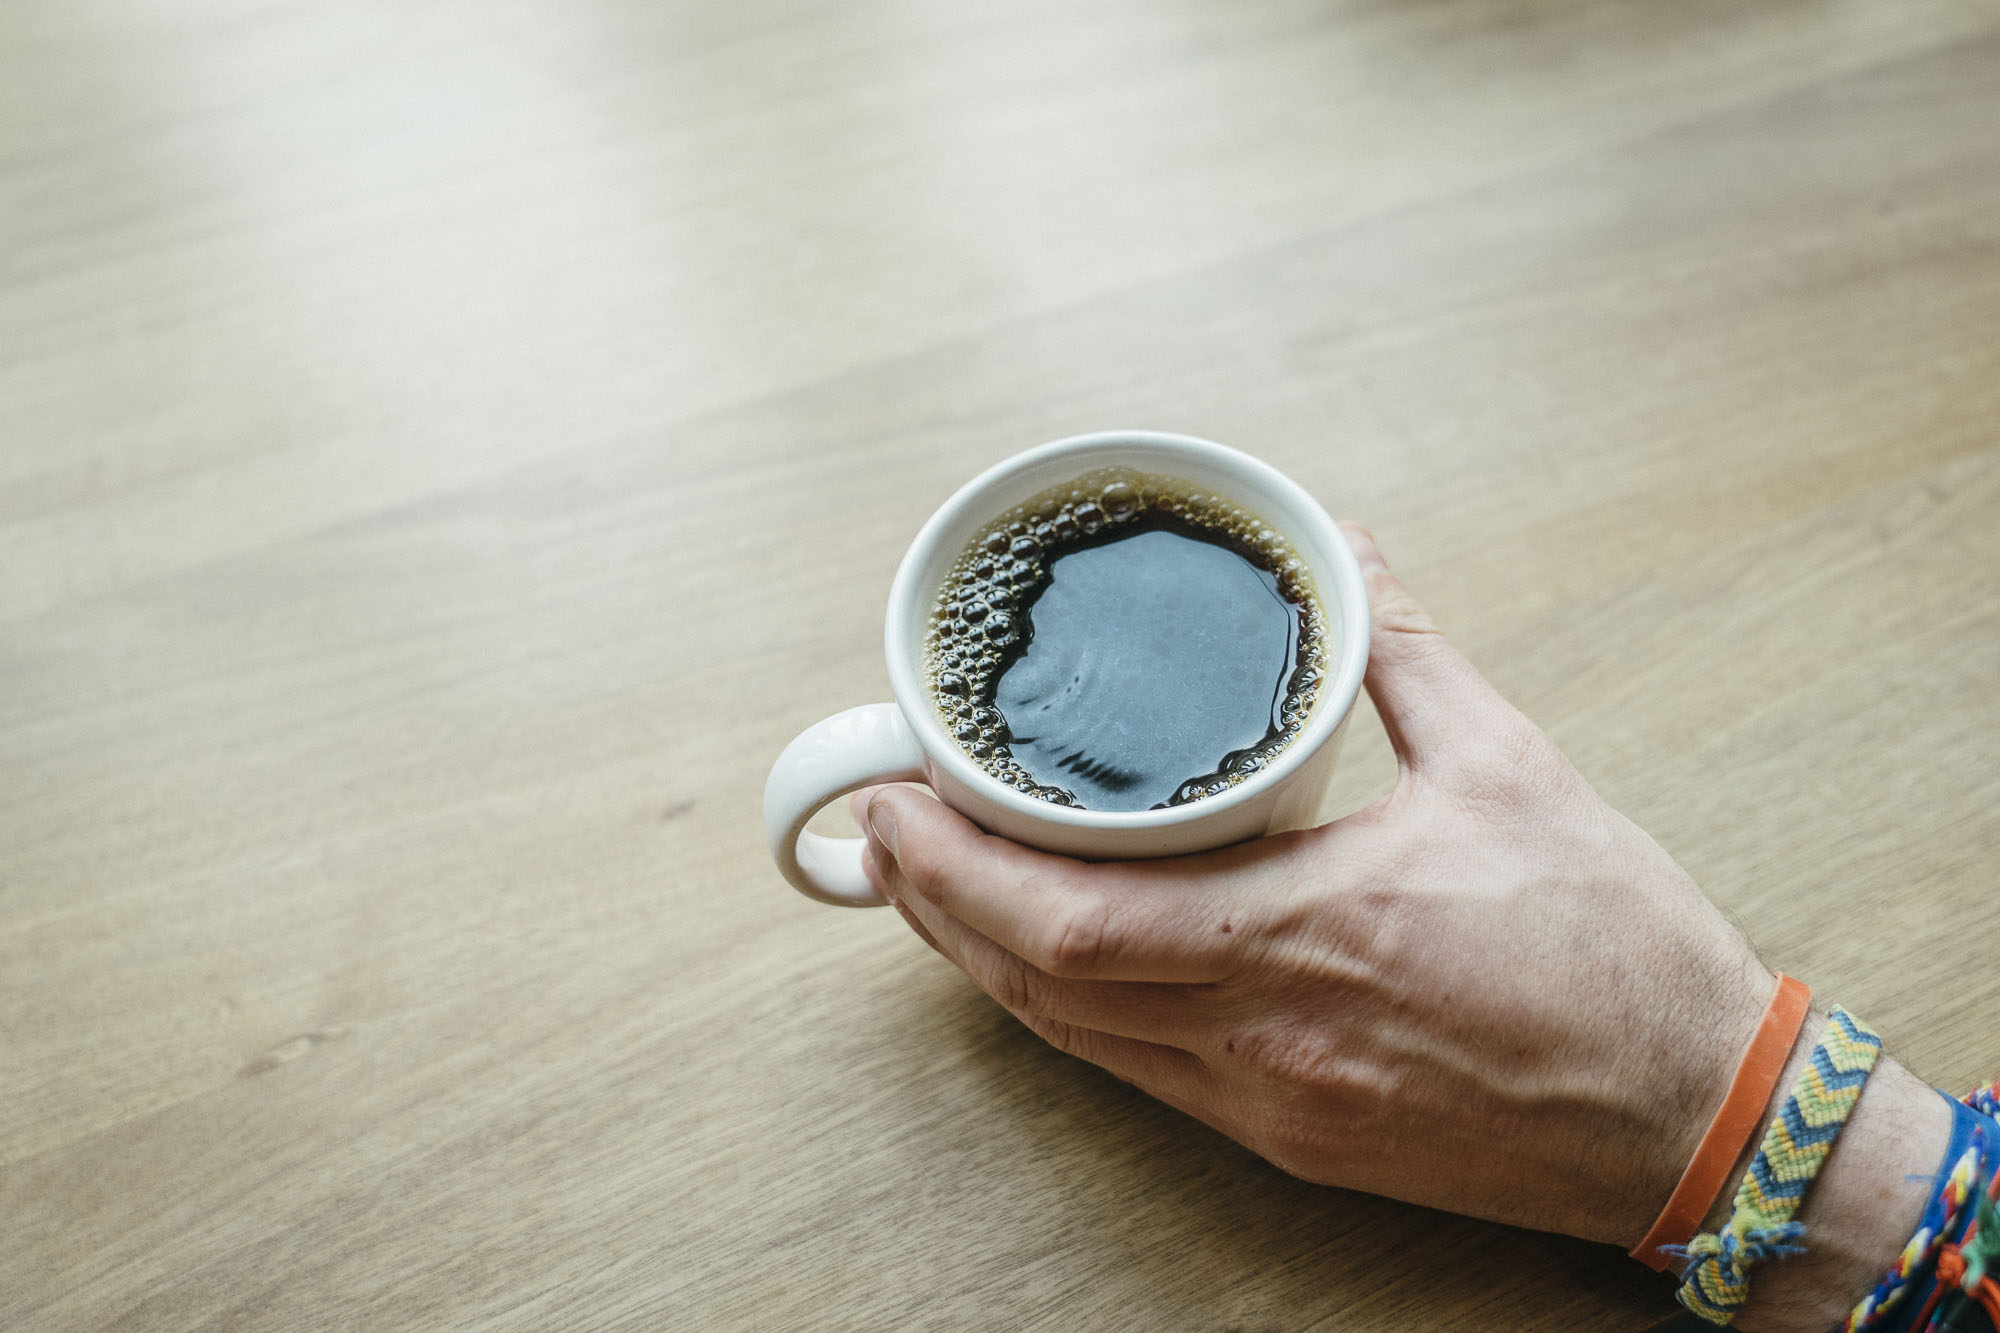 A hand holding a cup of coffee at Heart in Portland for Dirt Road Travels